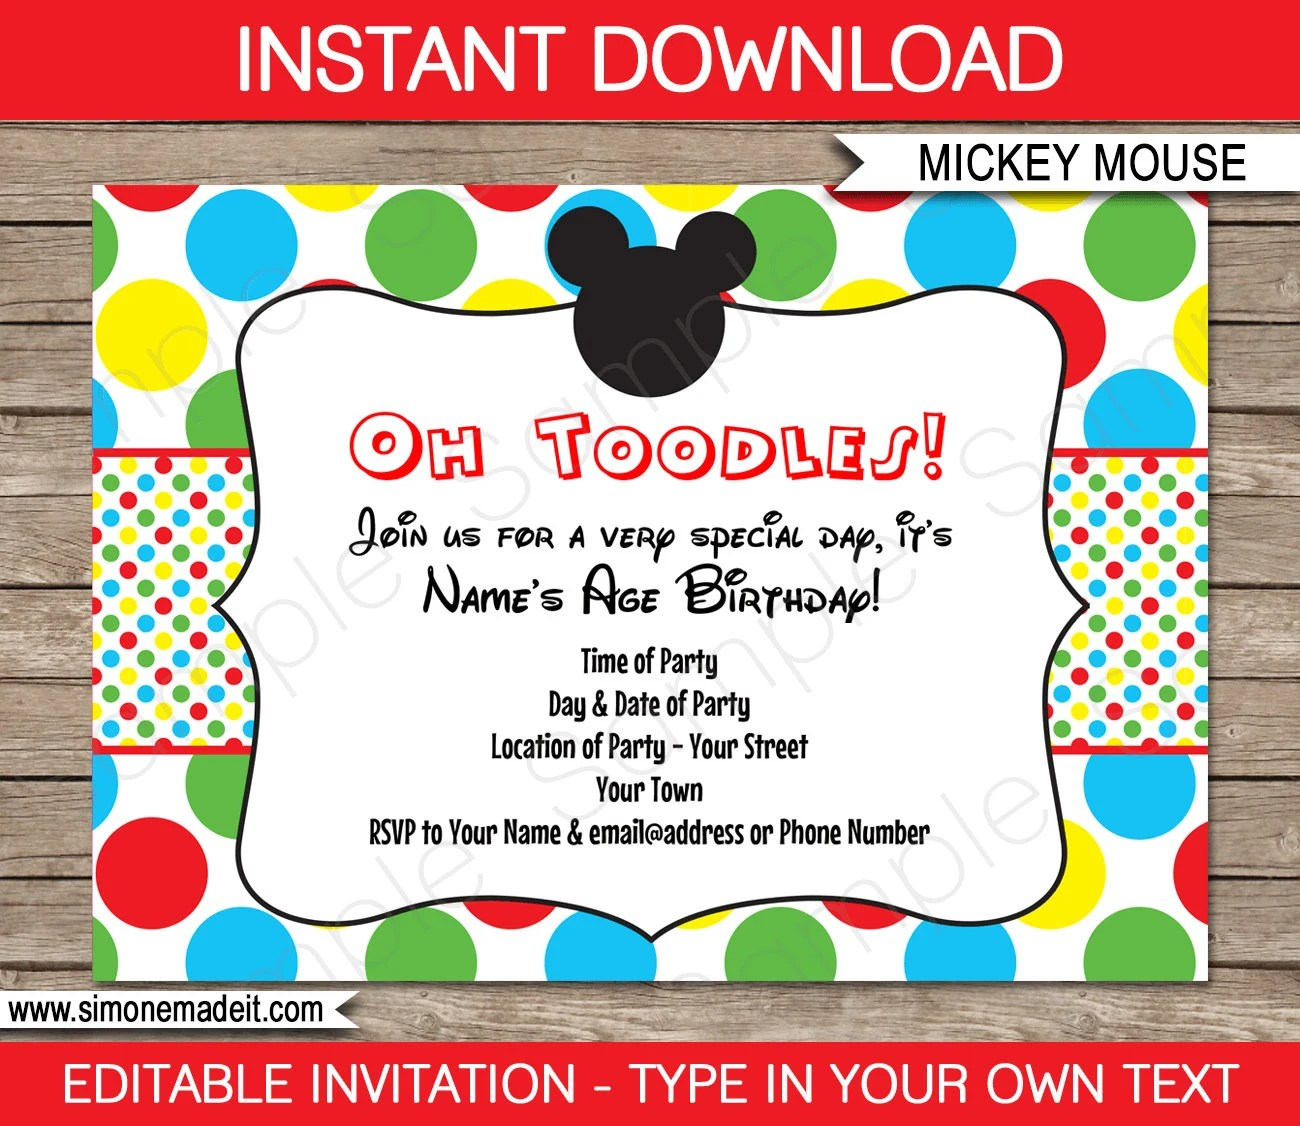 Mickey Mouse Invitation Template - Birthday Party - INSTANT DOWNLOAD